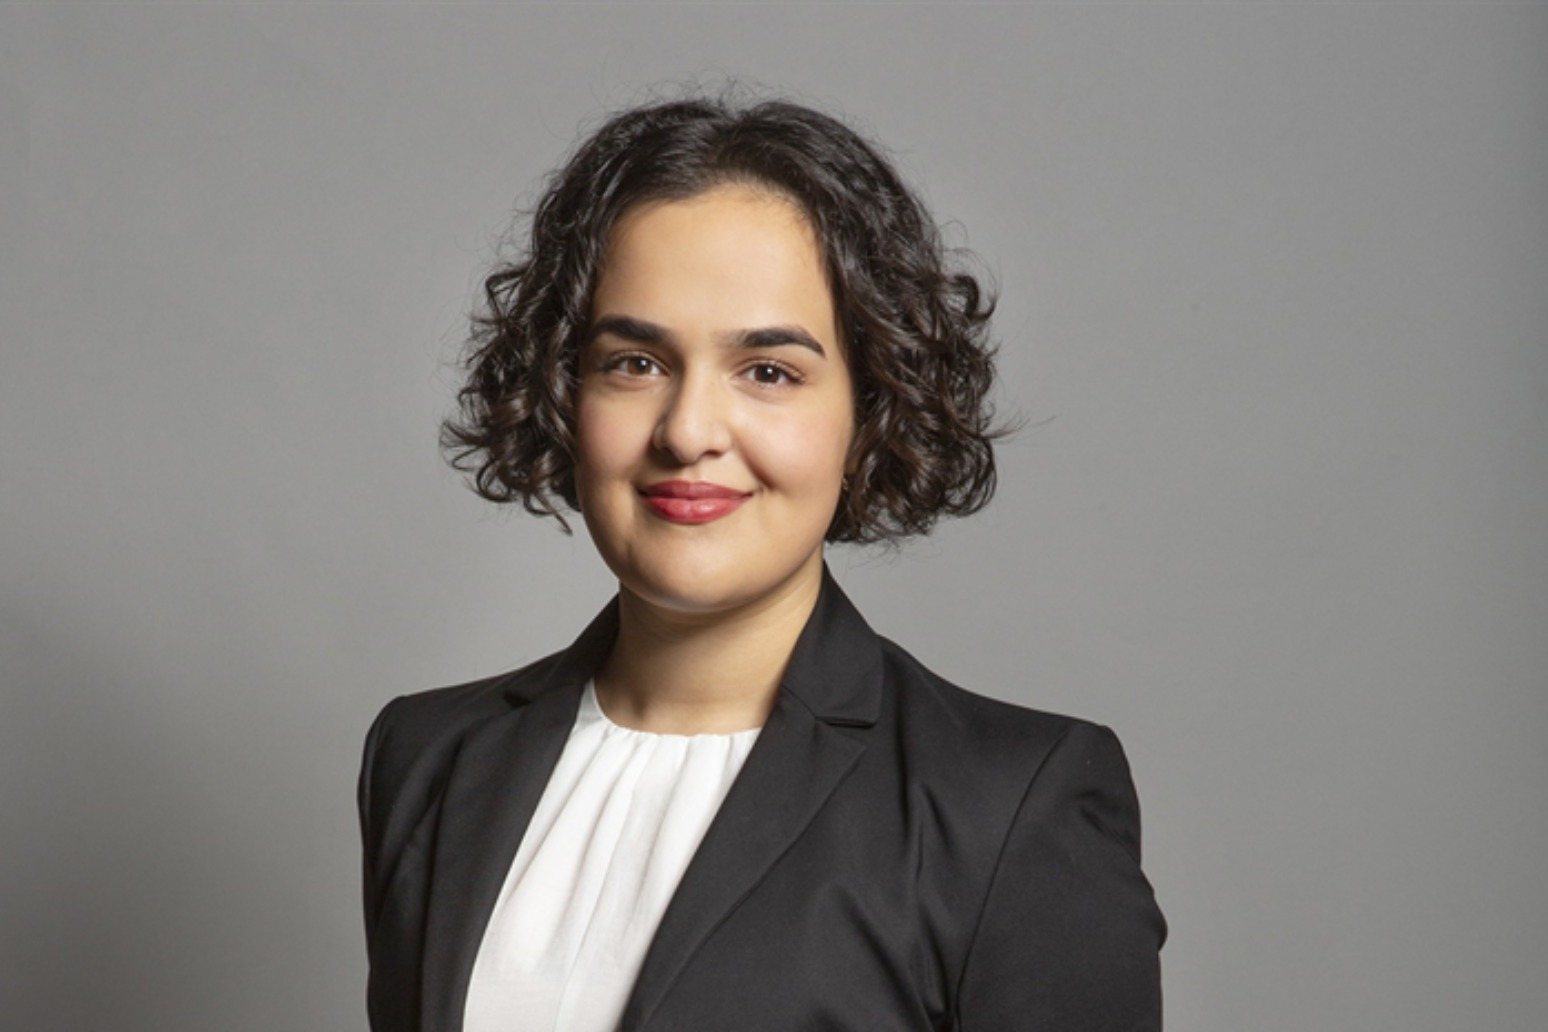 Youngest MP to return to Commons after leave of absence with PTSD